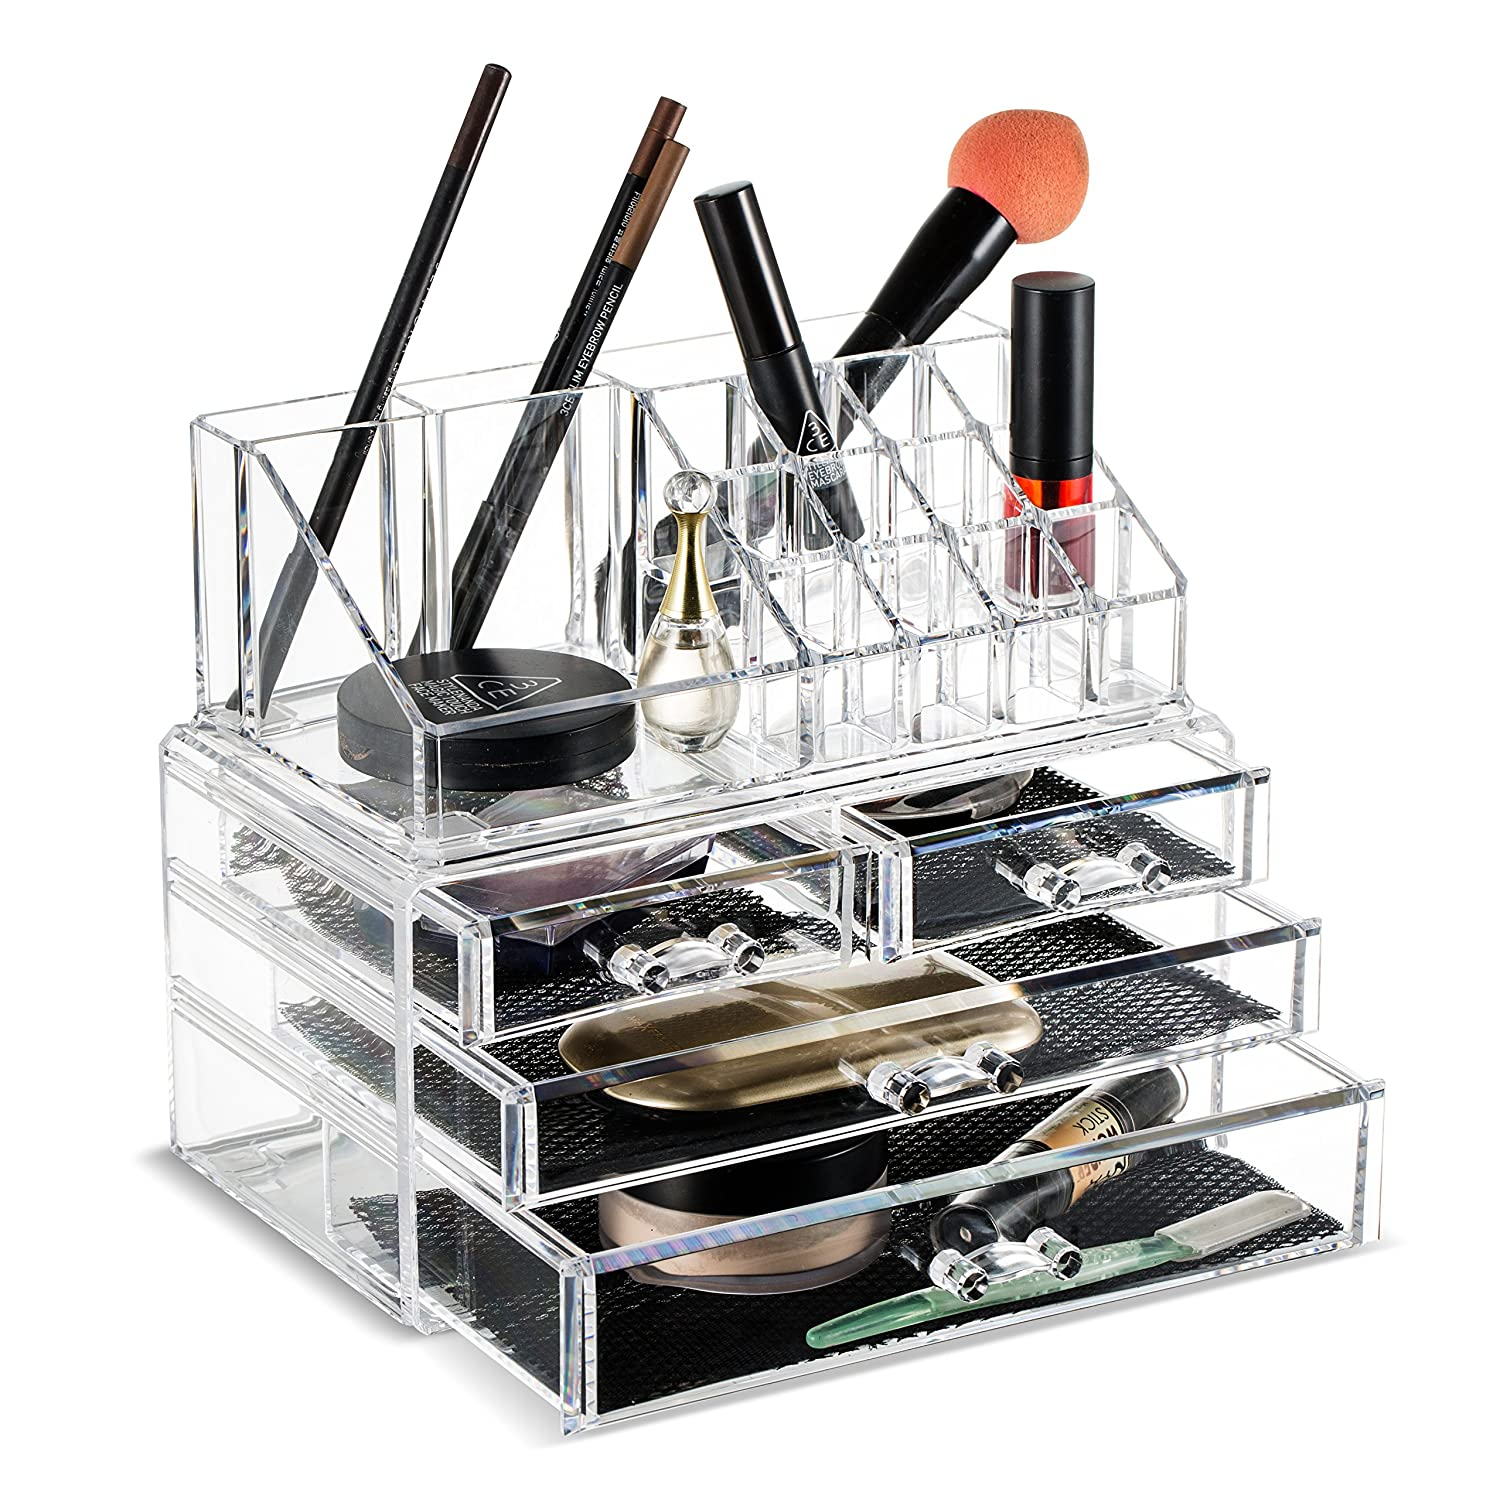 Felicite Home Makeup Cosmetic Organizer Conceal/Lipstick/Eyeshadow/Brushes In One Place Storage Drawers, Clear, Medium,Newest Edition Upgraded Bottom Drawer Size , 2 Piece Set by Felicite Home